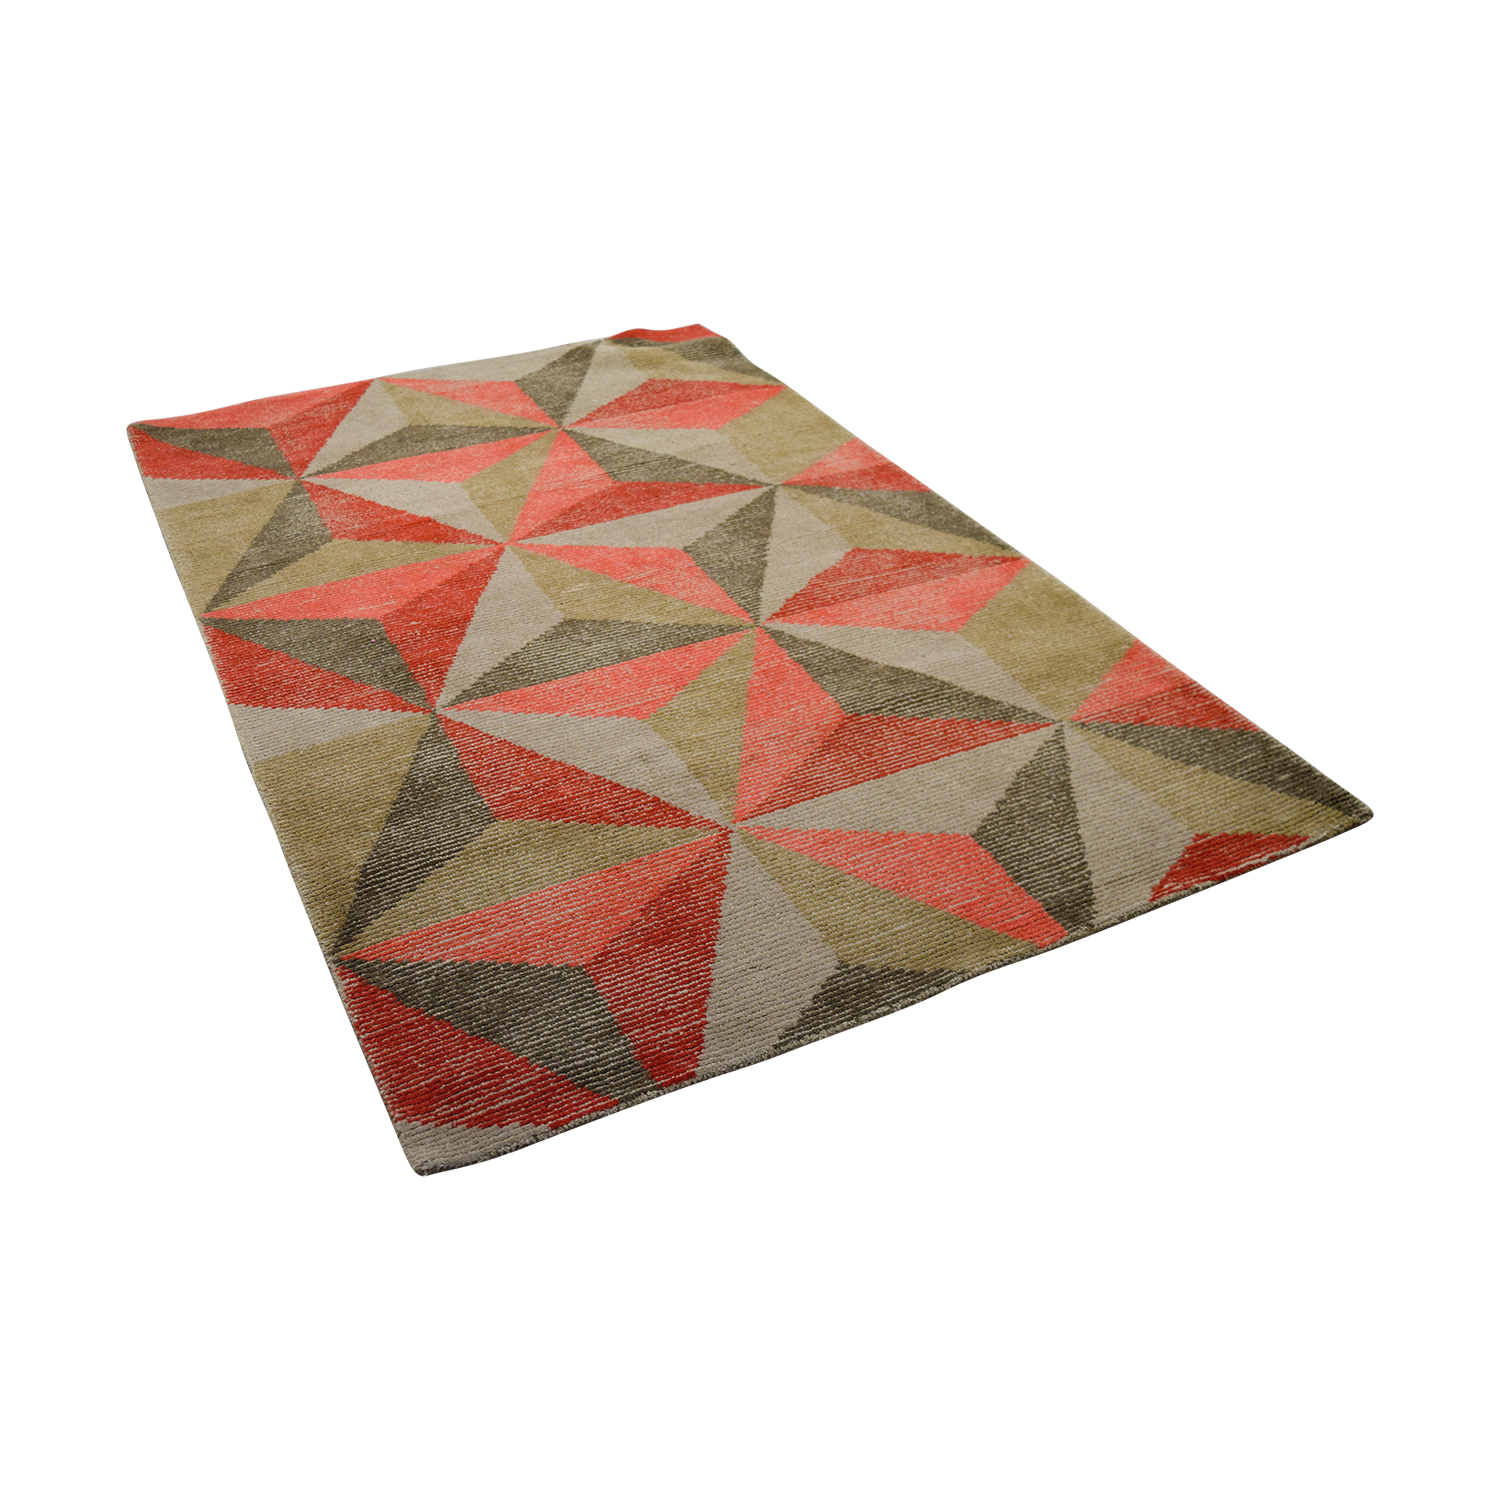 Obeetee Obeetee Geometric Tufted Wool Rug Rugs